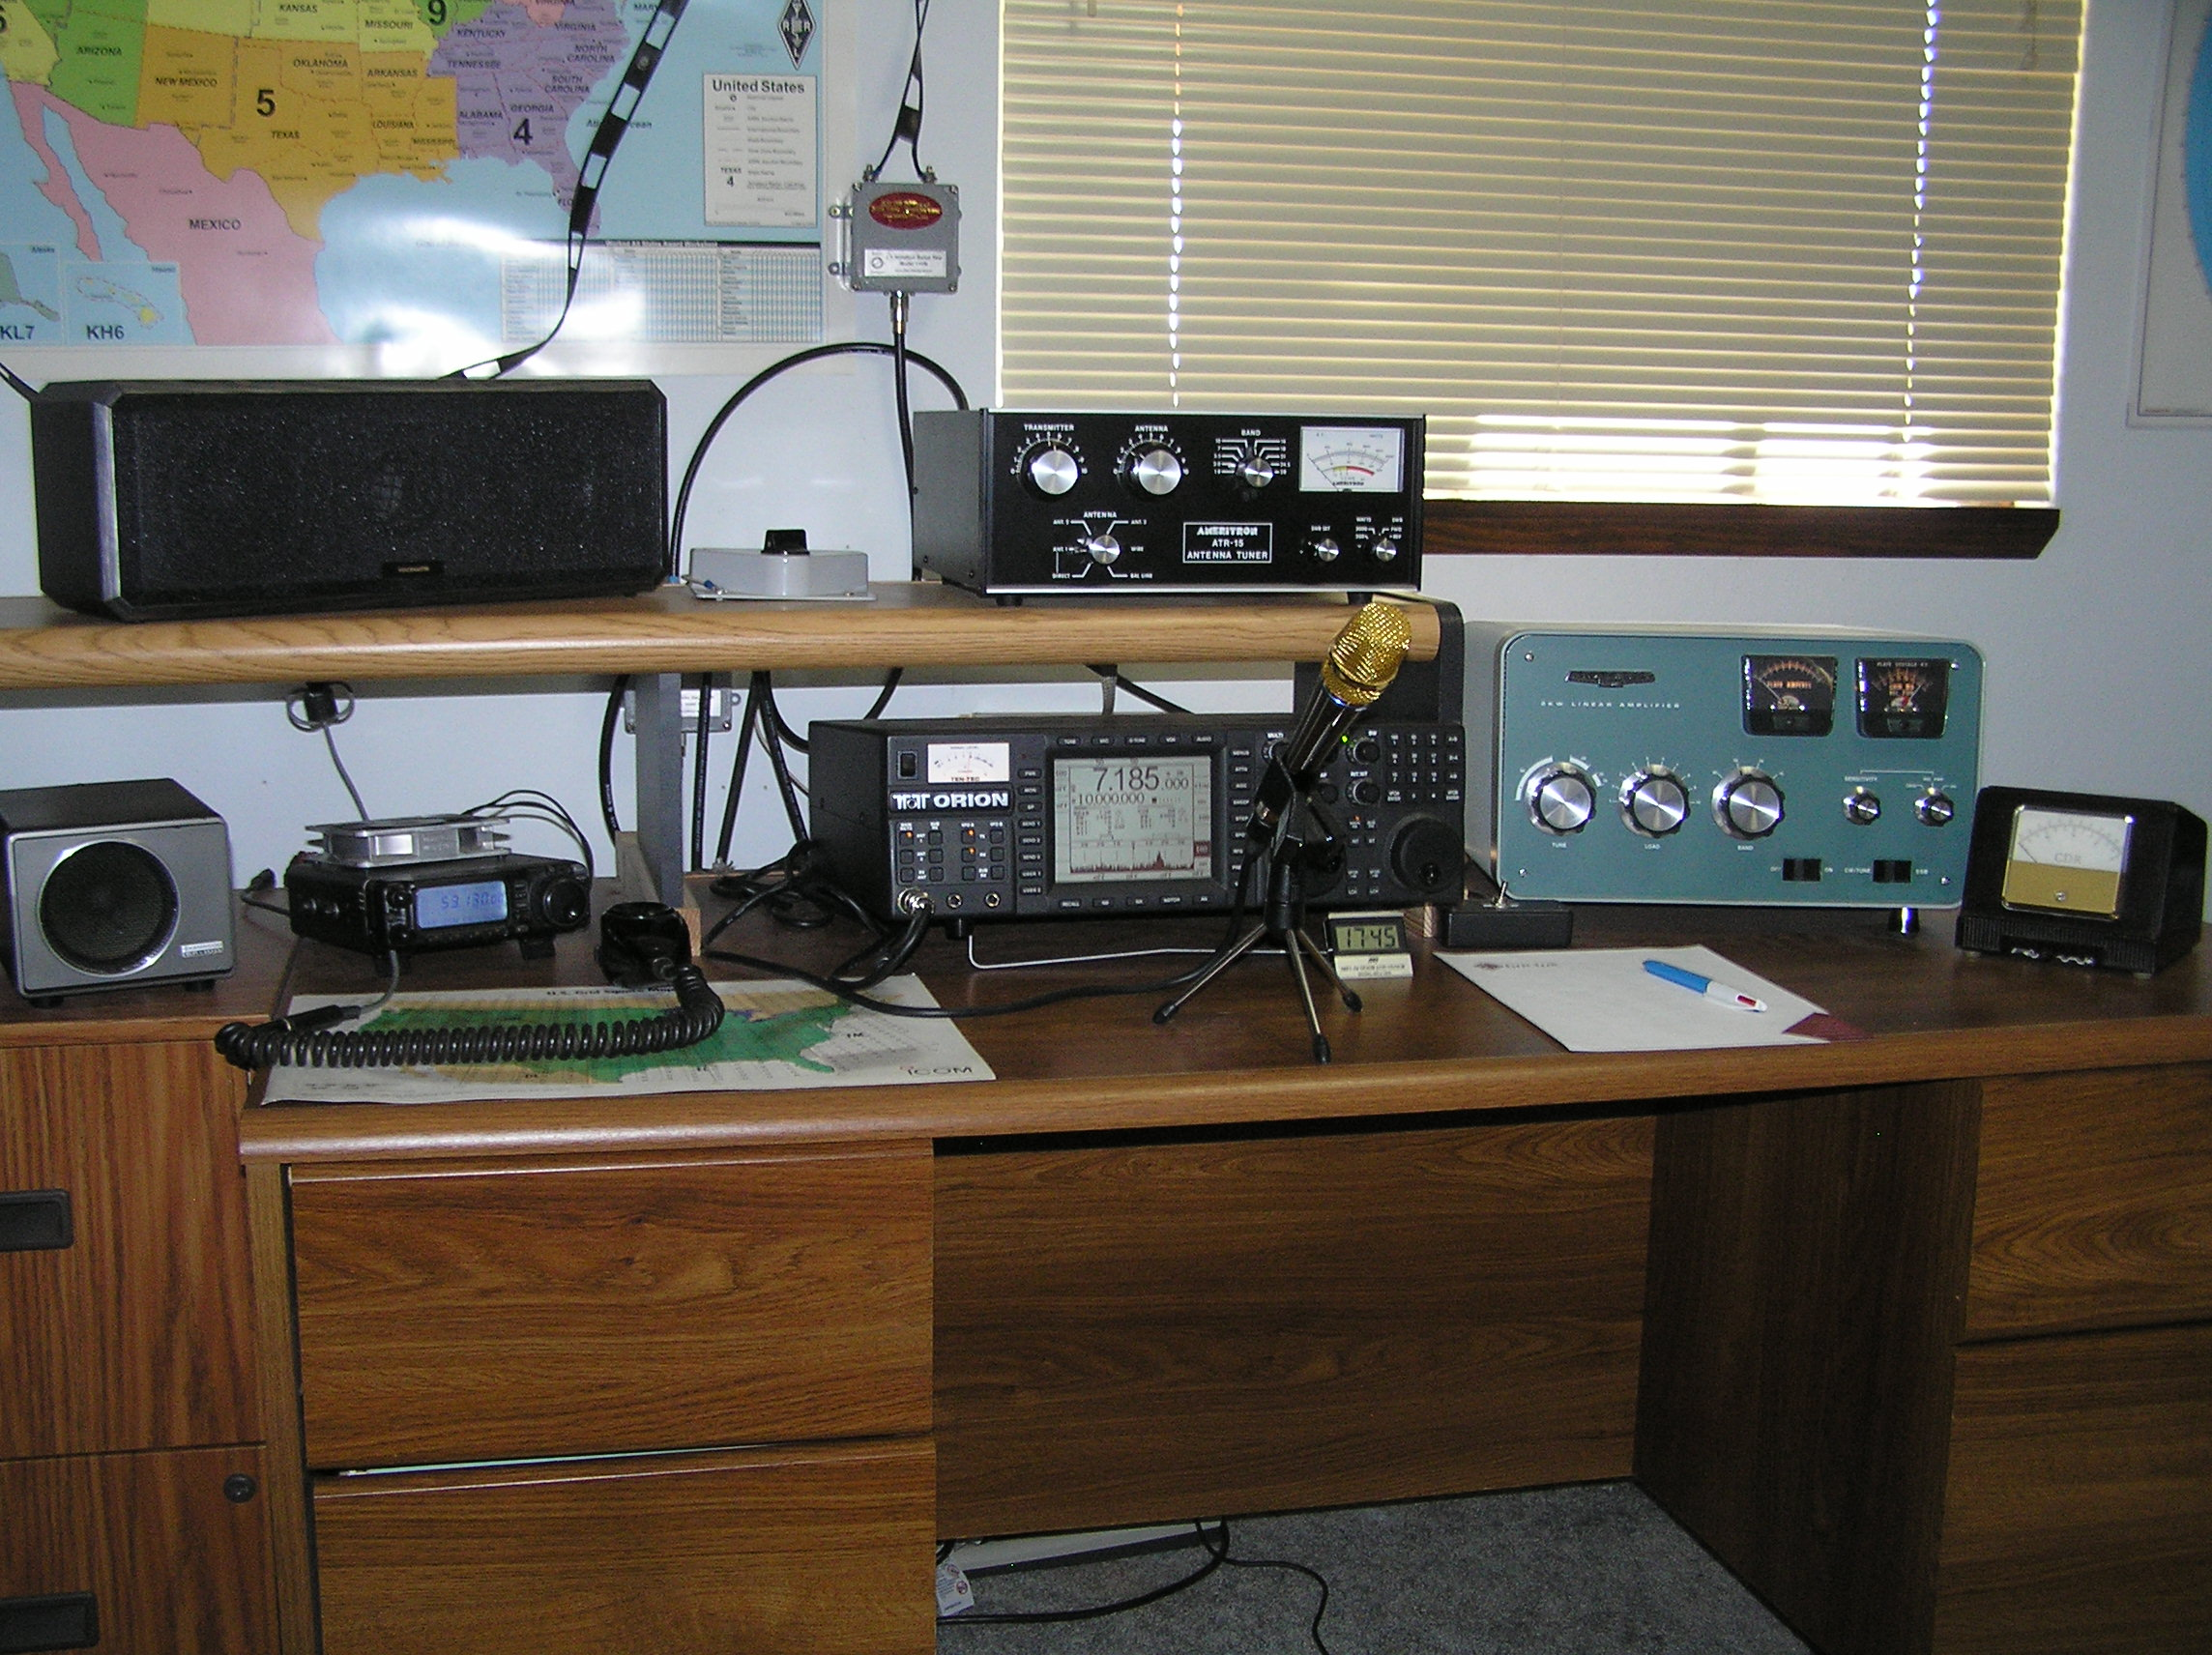 My main station as of Aug-2013 consists of a Ten Tec Orion with a Heil GM-5 Desk Mic driving a Heathkit SB-221 through an Ameritron ATR-15 Antenna Tuner. Also at the operation position is a Yaesu FT-100D that I mainly use for 6 meter FM.